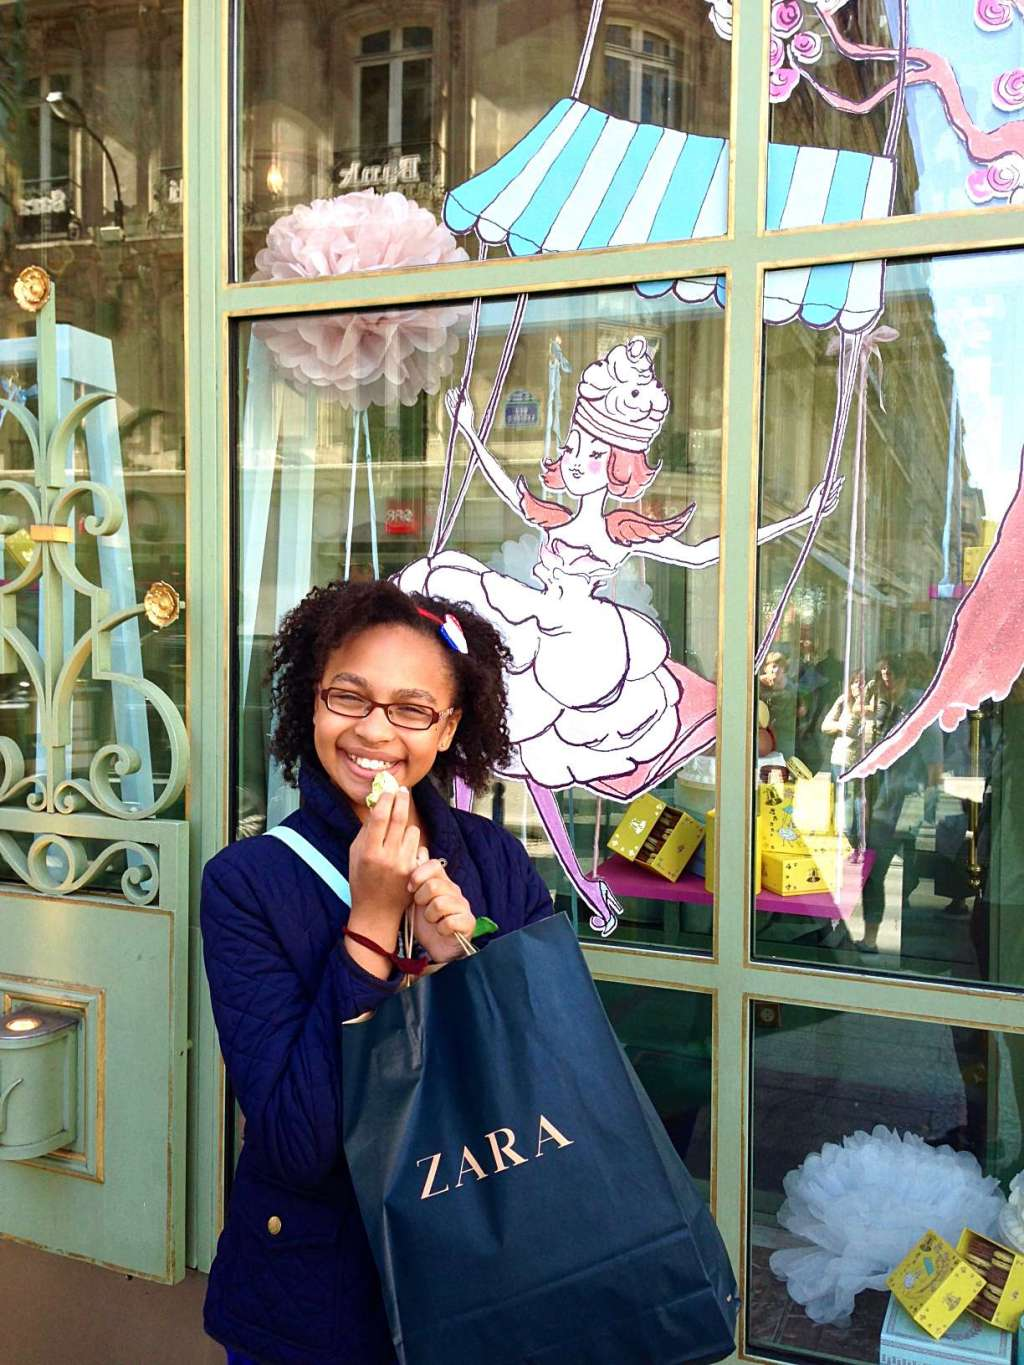 How To See Paris in 4 Days - eating a macaron on Champs-Élysées at Ladurée.